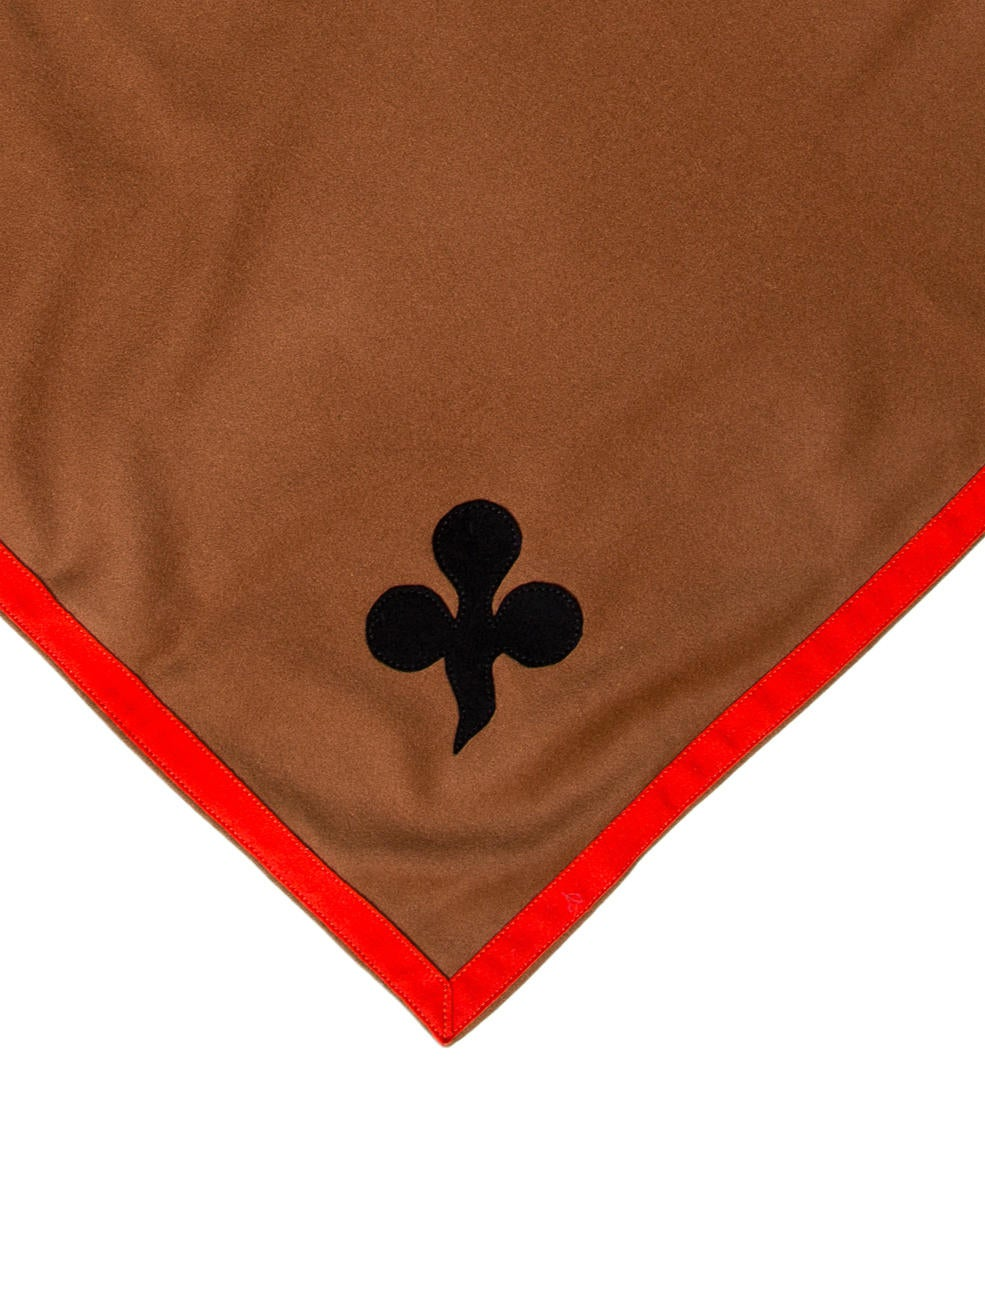 Herm S Felt Playing Card Table Cover Decor And